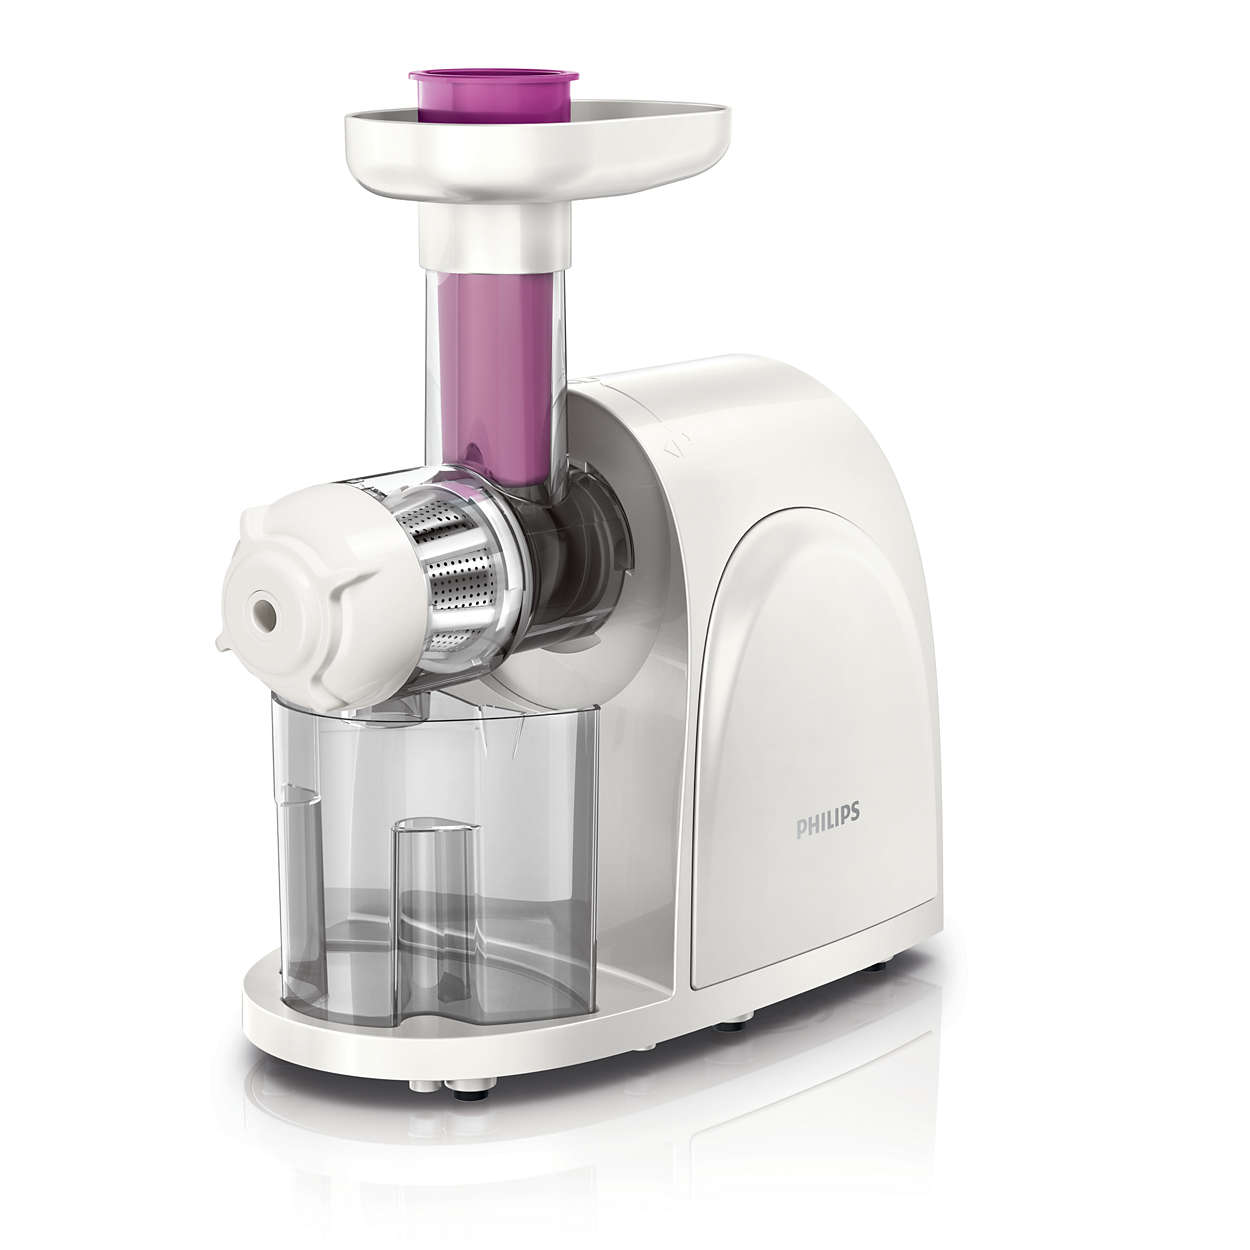 Slow Juicer Philips Hr1897 : viva Collection Slow juicer HR1830/03 Philips